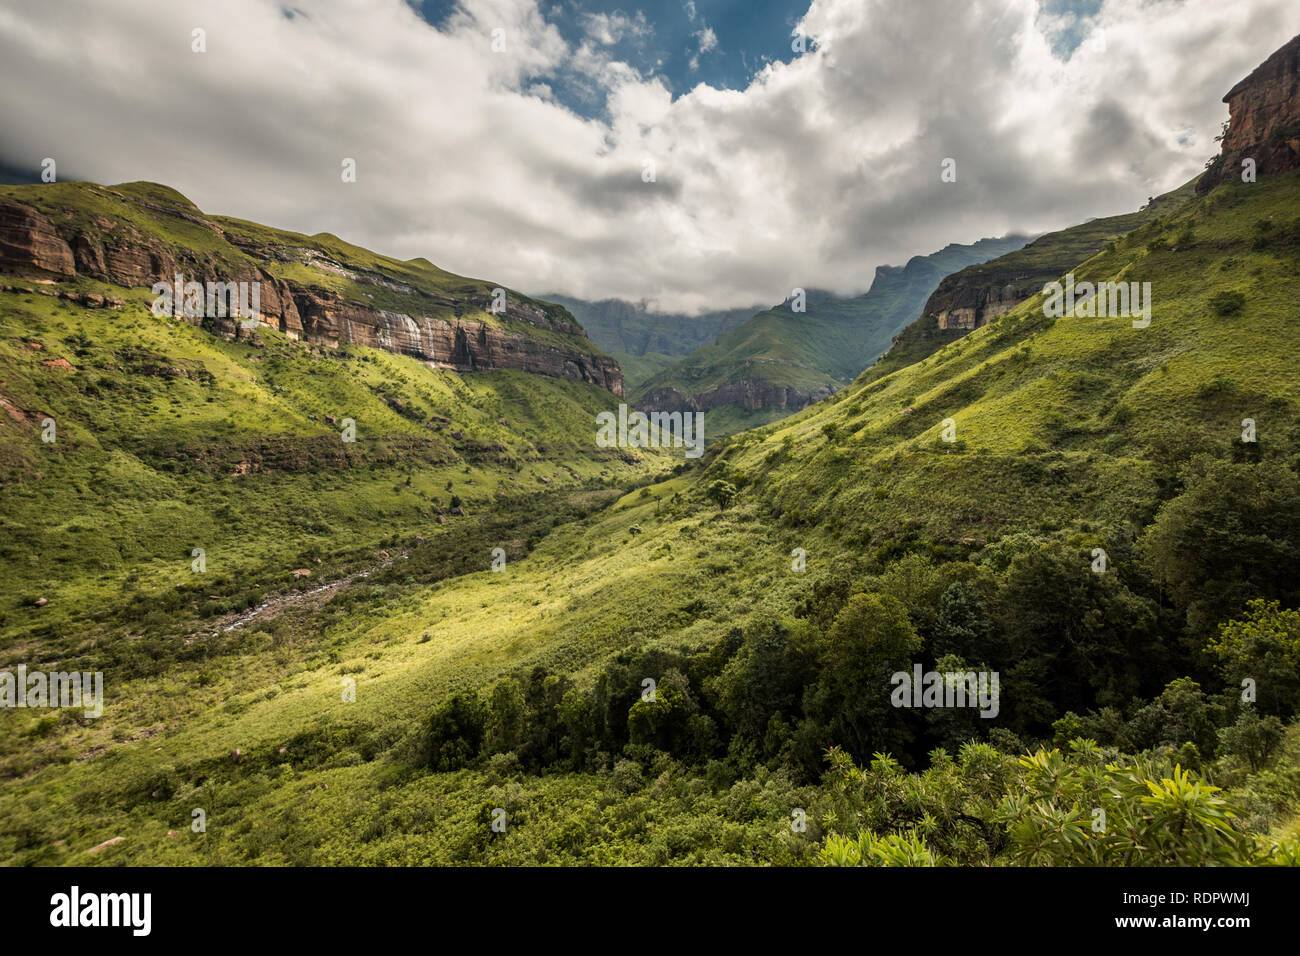 Ciffs and mountain sides on the Thukela hike to the bottom of the Amphitheatre's Tugela Falls in the Royal Natal National Park, Drakensberg, South Afr Stock Photo